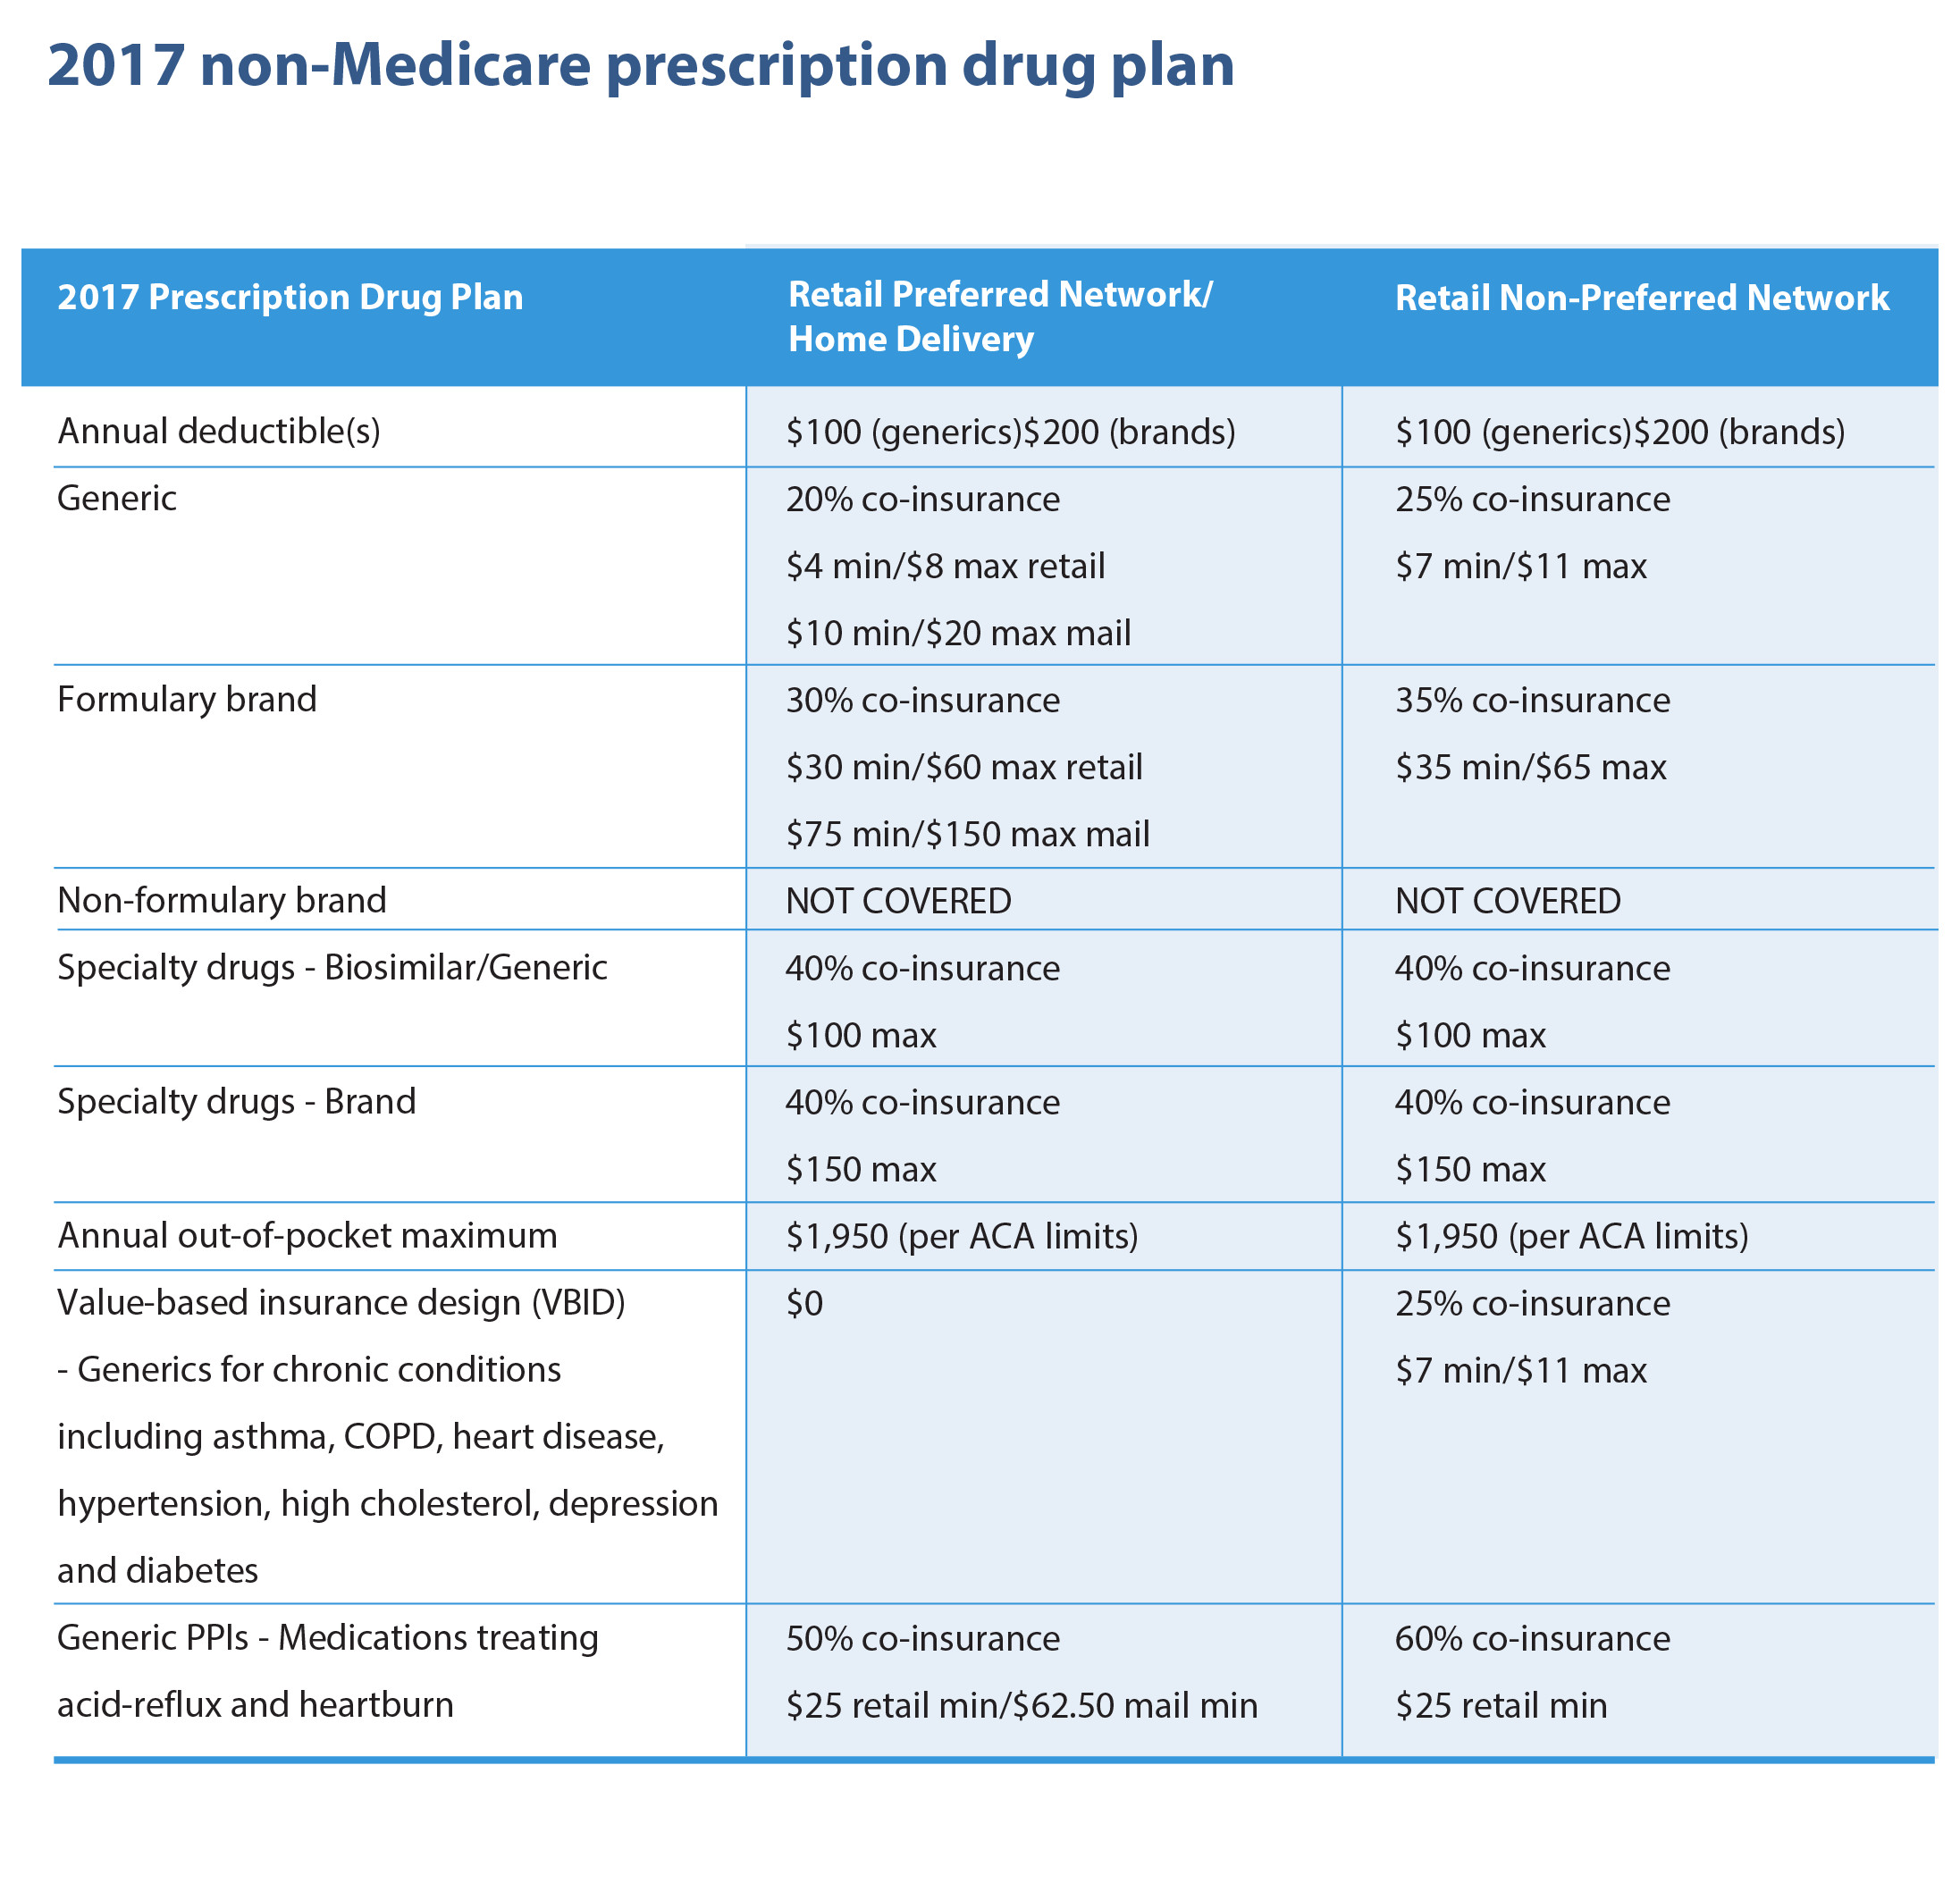 Free rx dental plan -  Opers Non Medicare Formulary List 2017 Rx Drug Coverage Summary Plan Description